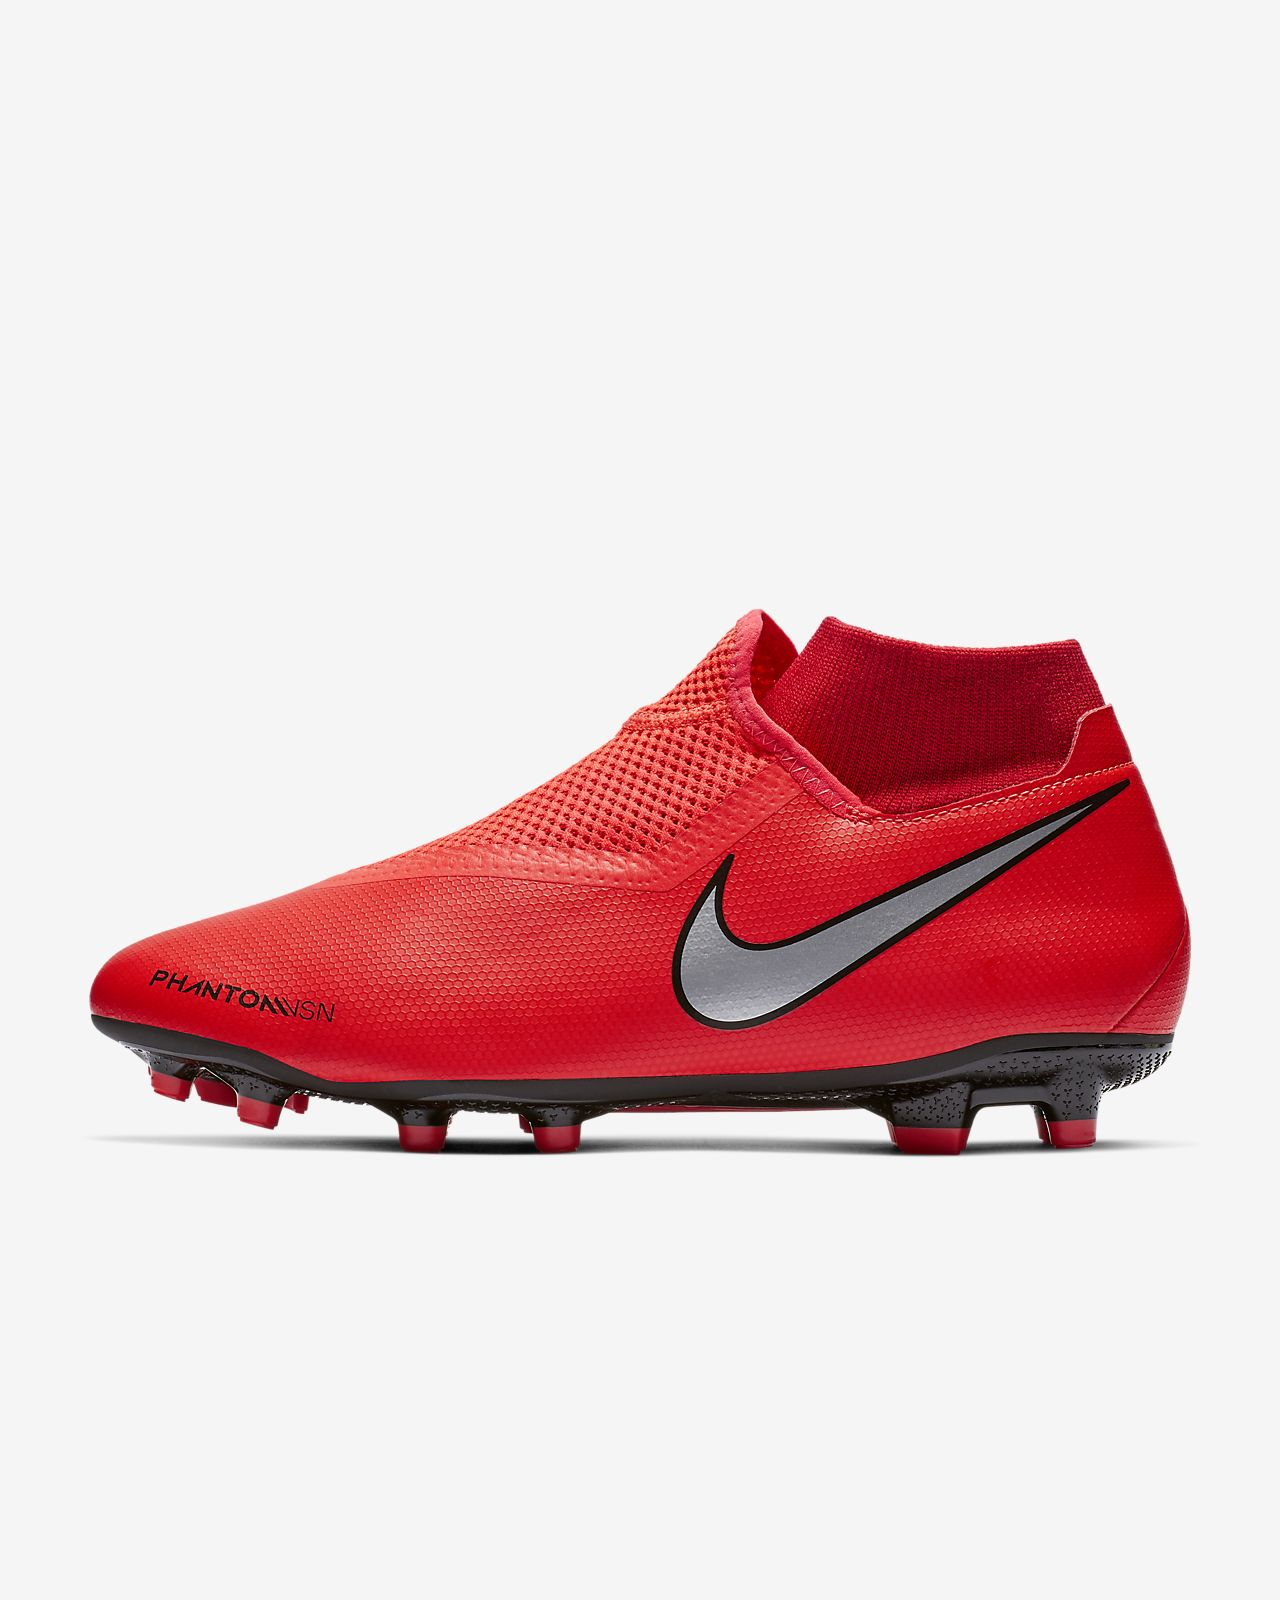 low priced 45fc1 5ce37 ... Nike PhantomVSN Academy Dynamic Fit Game Over MG Botas de fútbol para  múltiples superficies